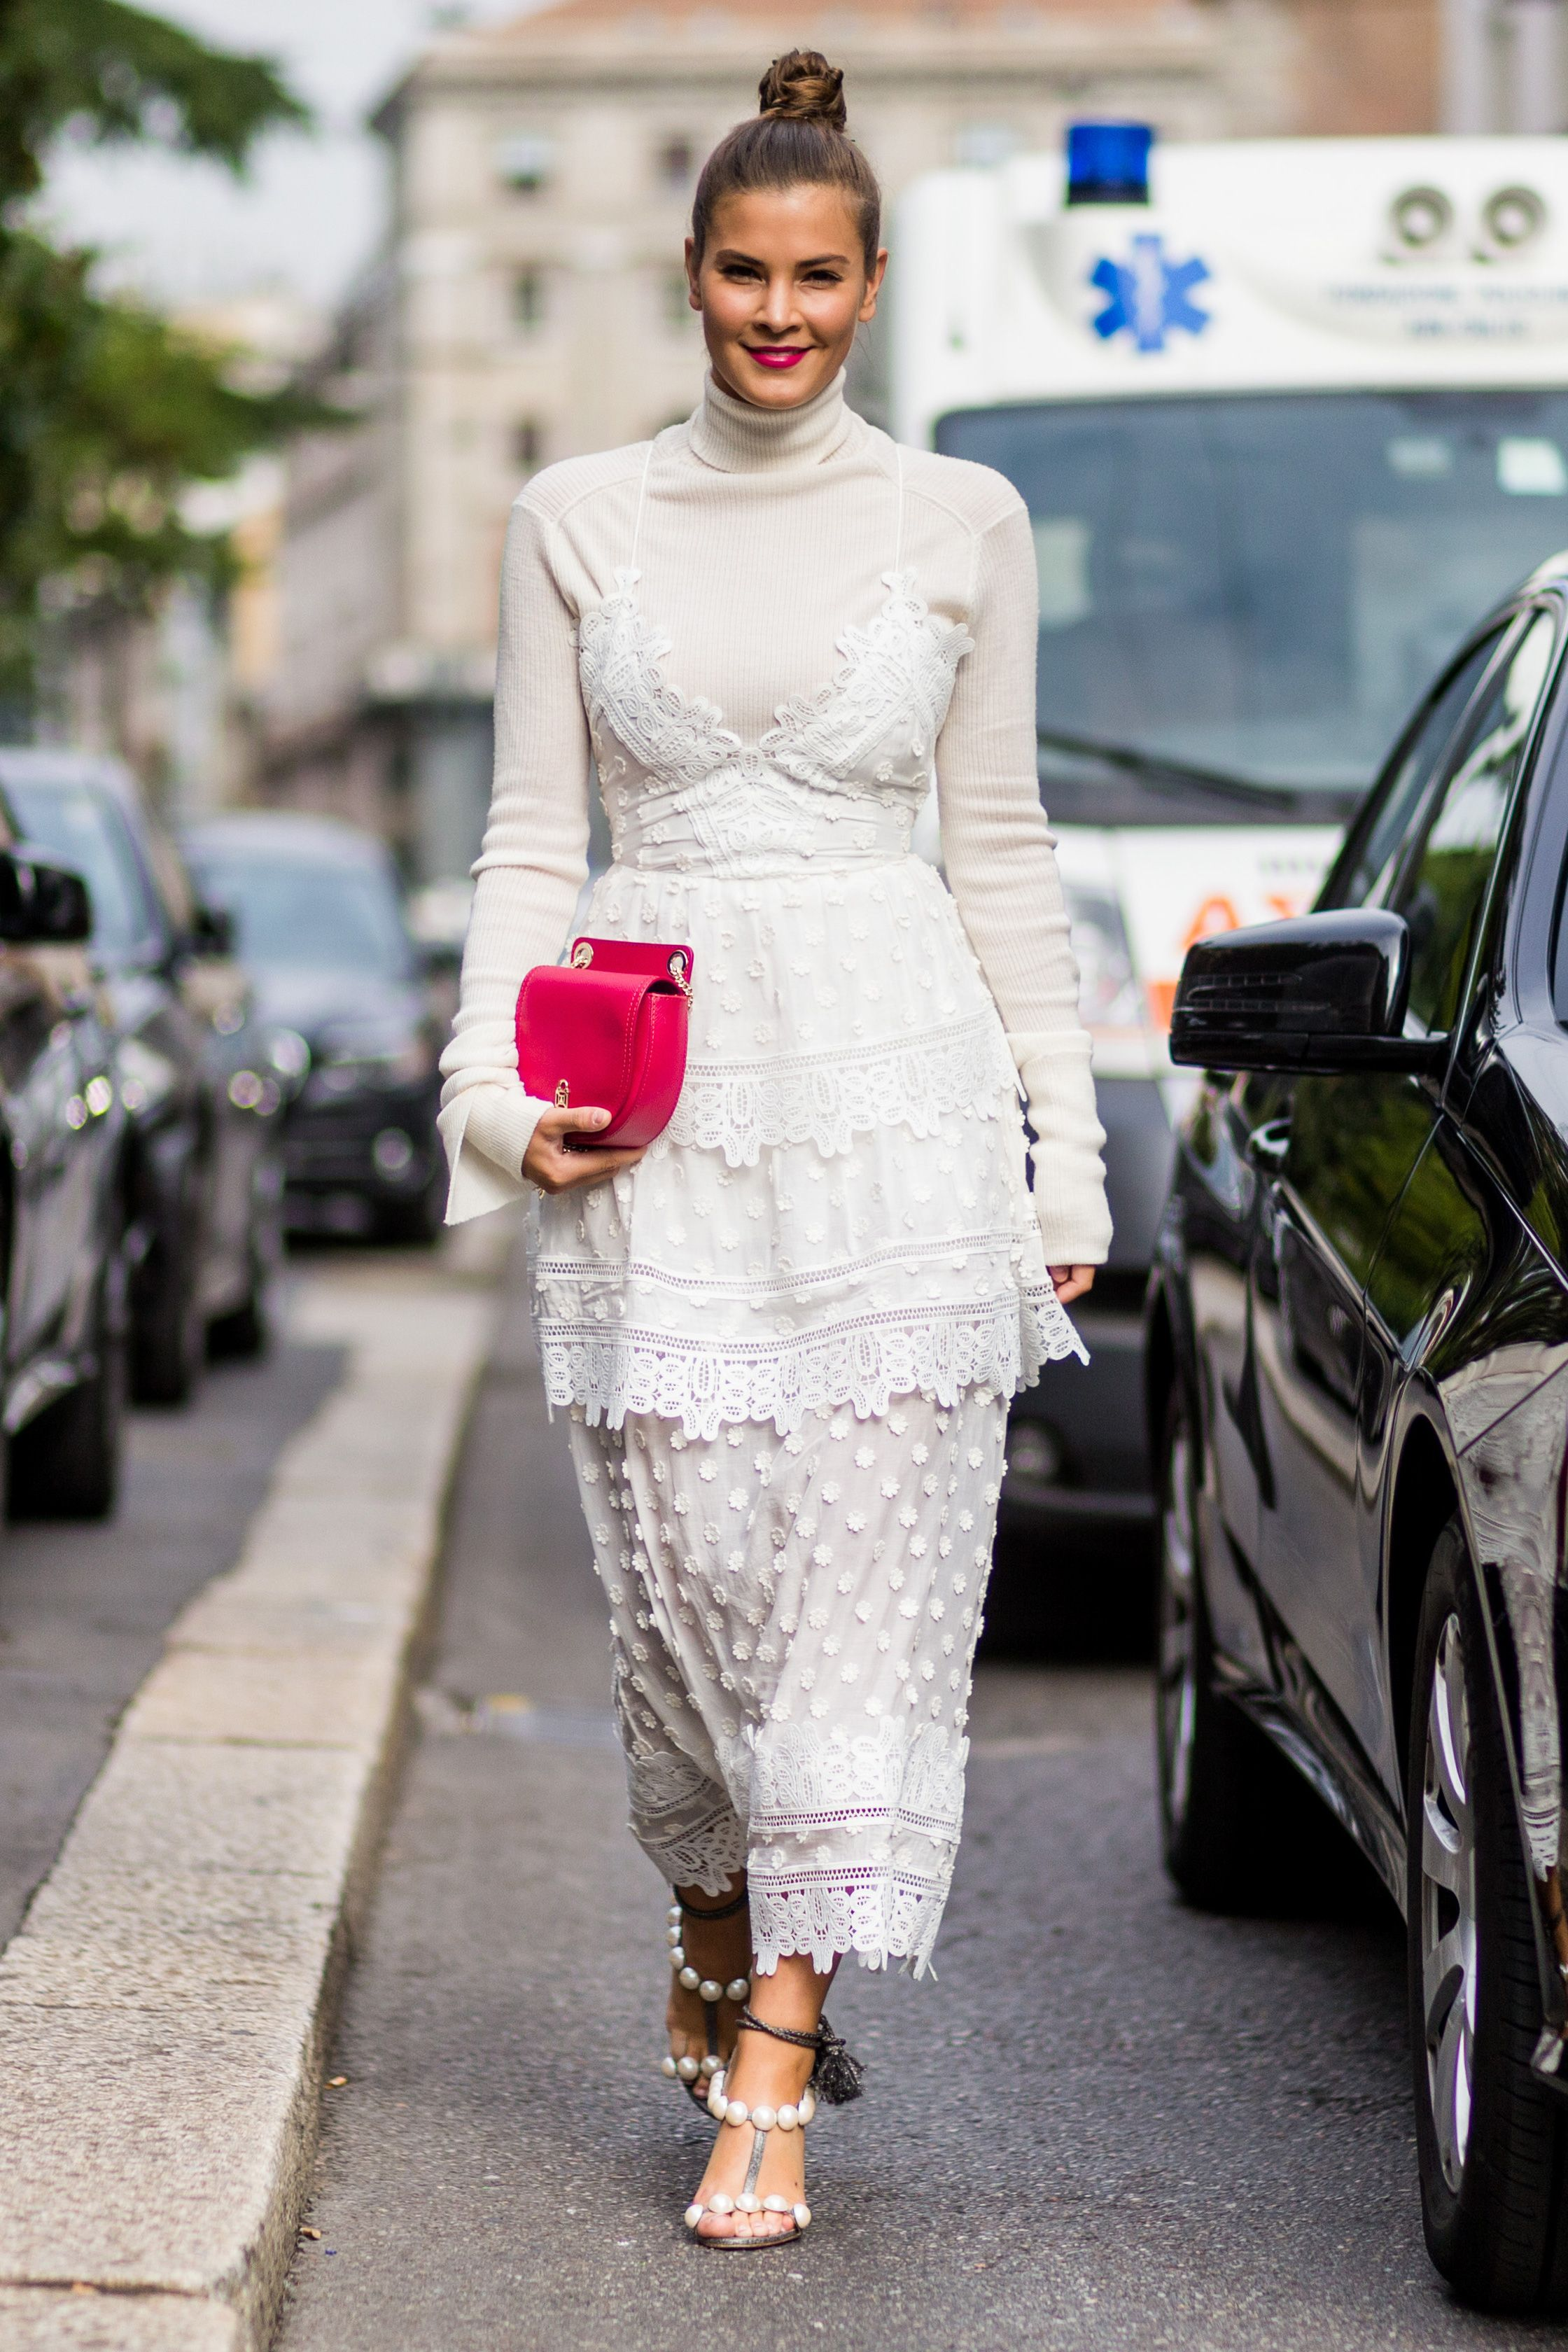 Image result for bag outfit street style 2017